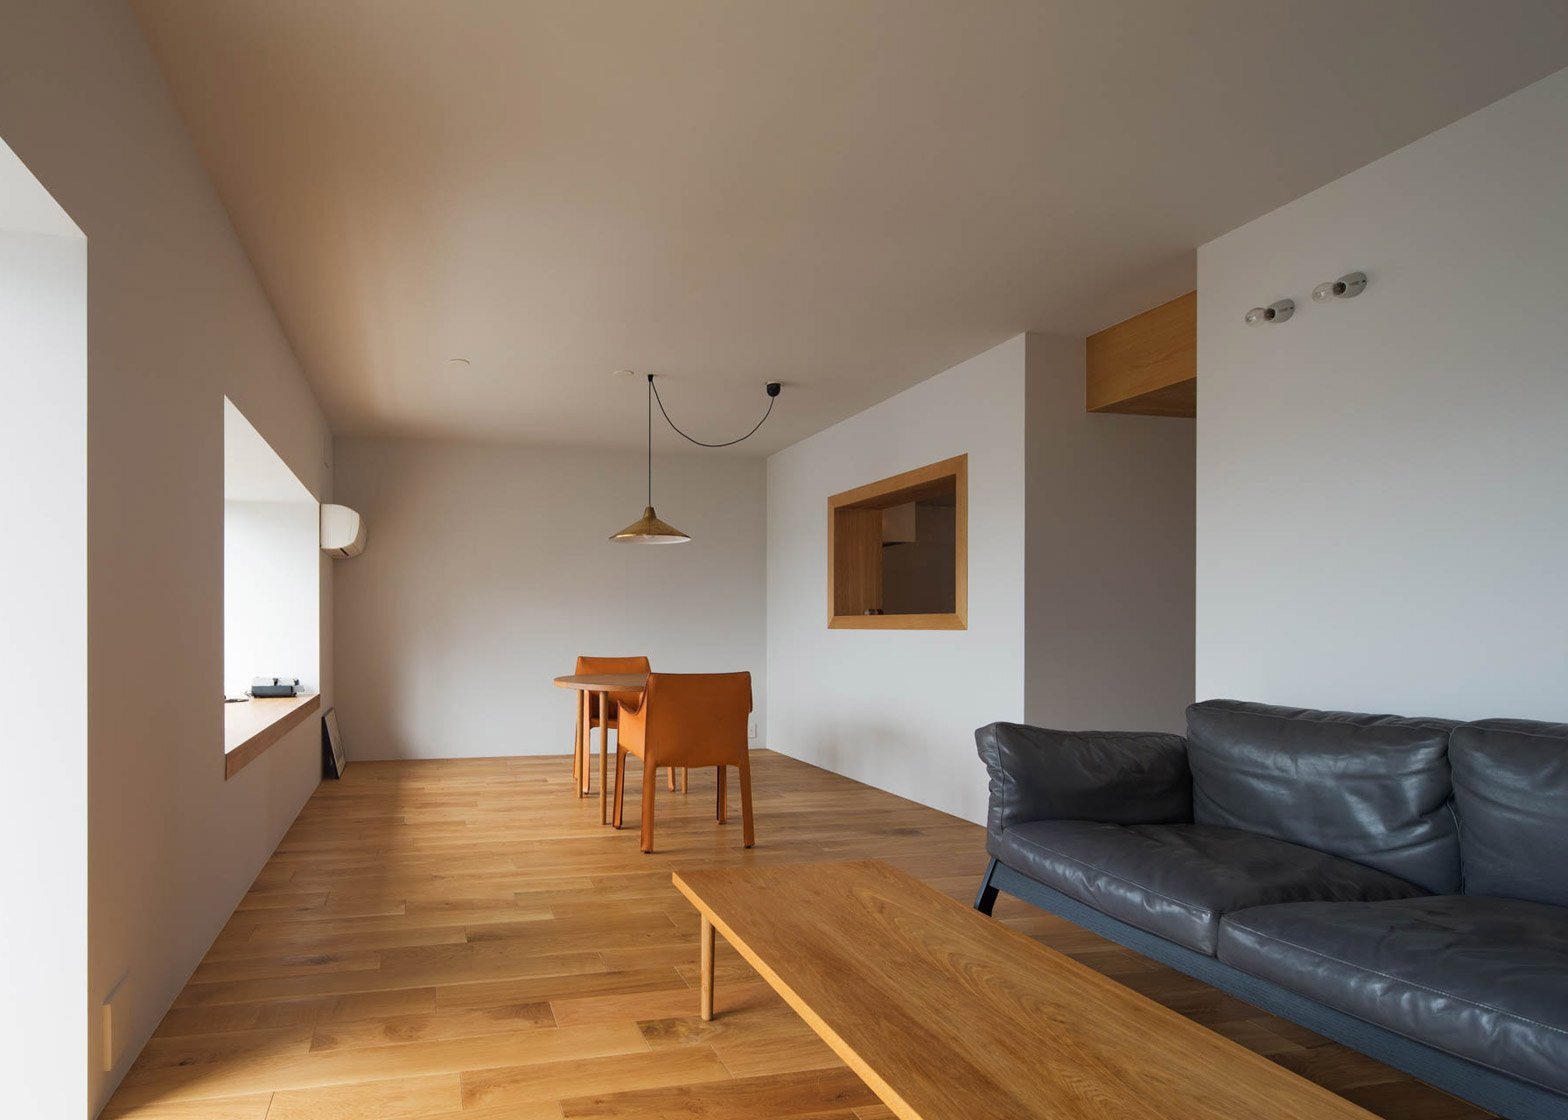 Apartment Machiya - Yumiko Miki Architects - Tokyo - Living and DIning Room - Humble Homes